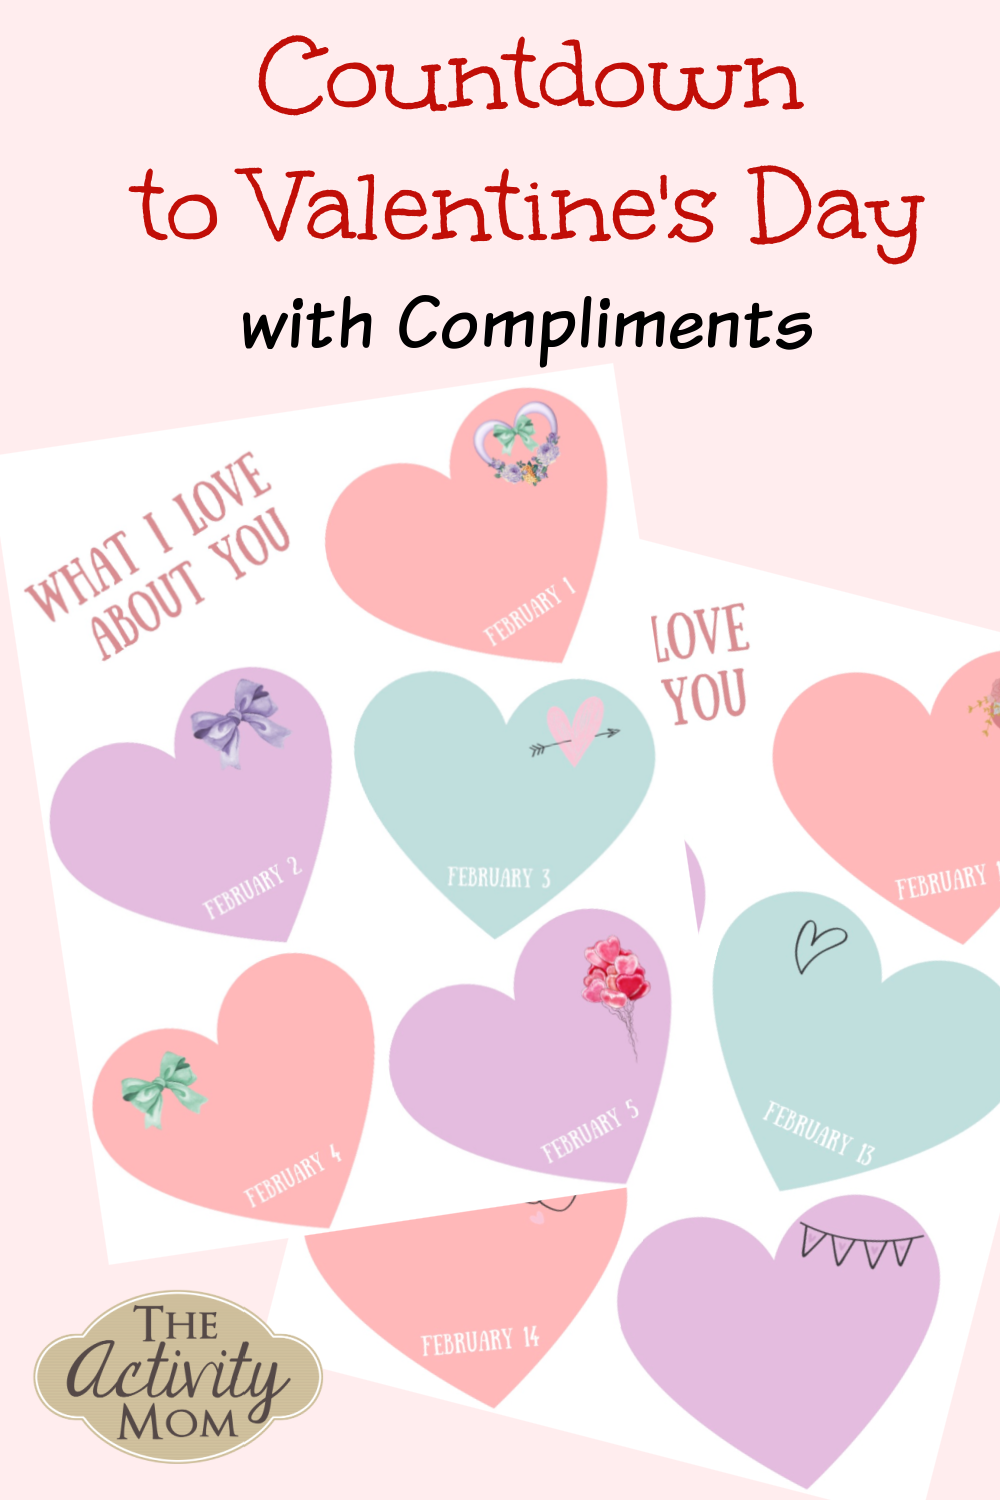 Countdown to Valentine's Day with Compliments